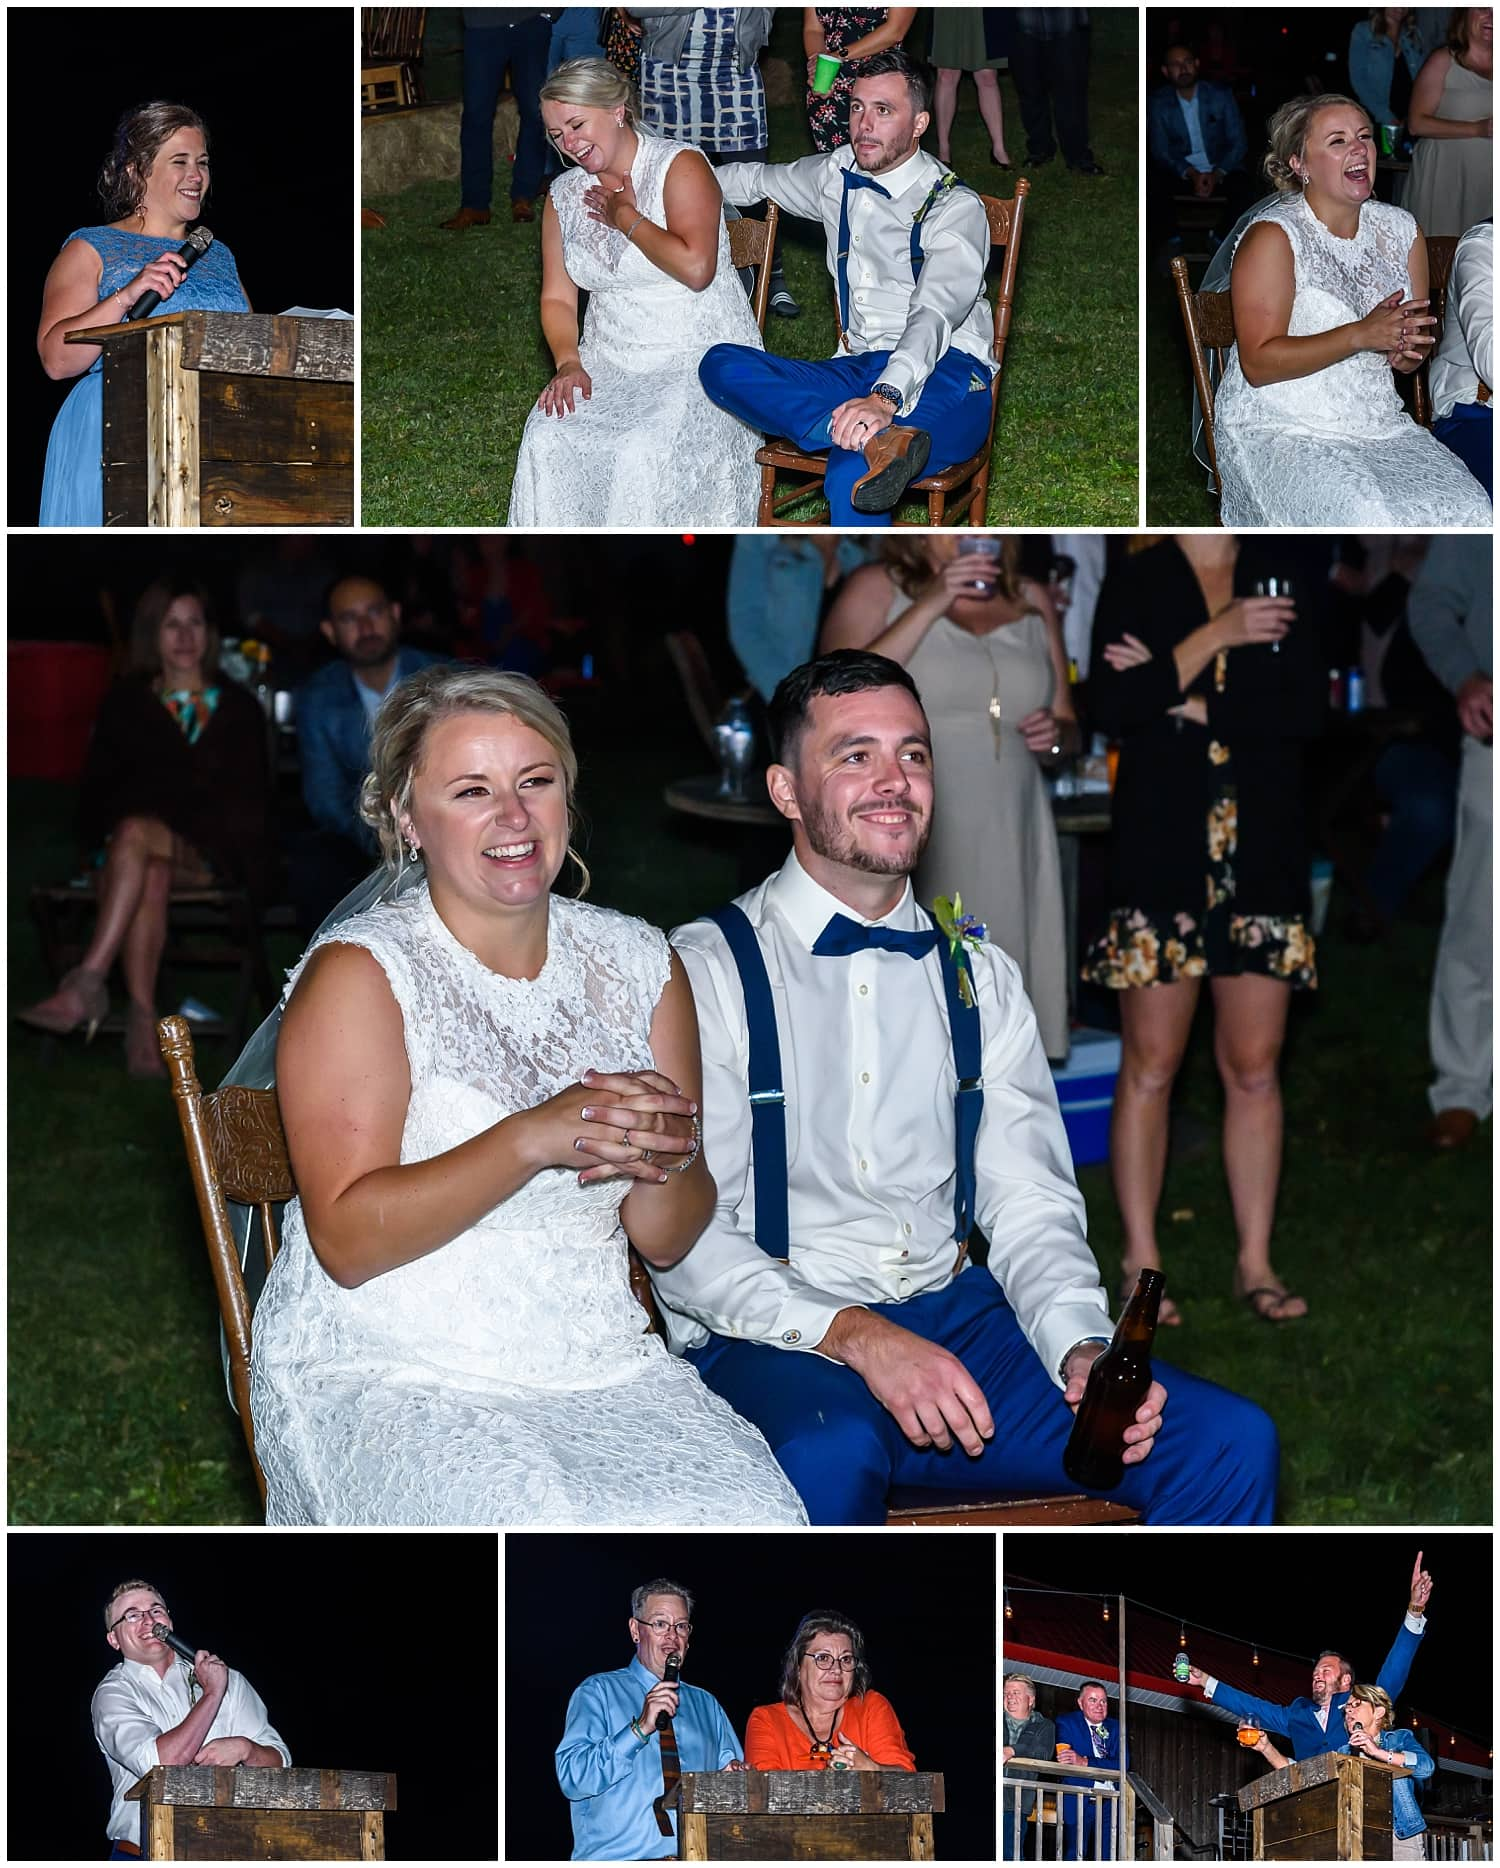 The bride and groom laughing during wedding speeches at the Barn at Sadie Belle Farm in NS.